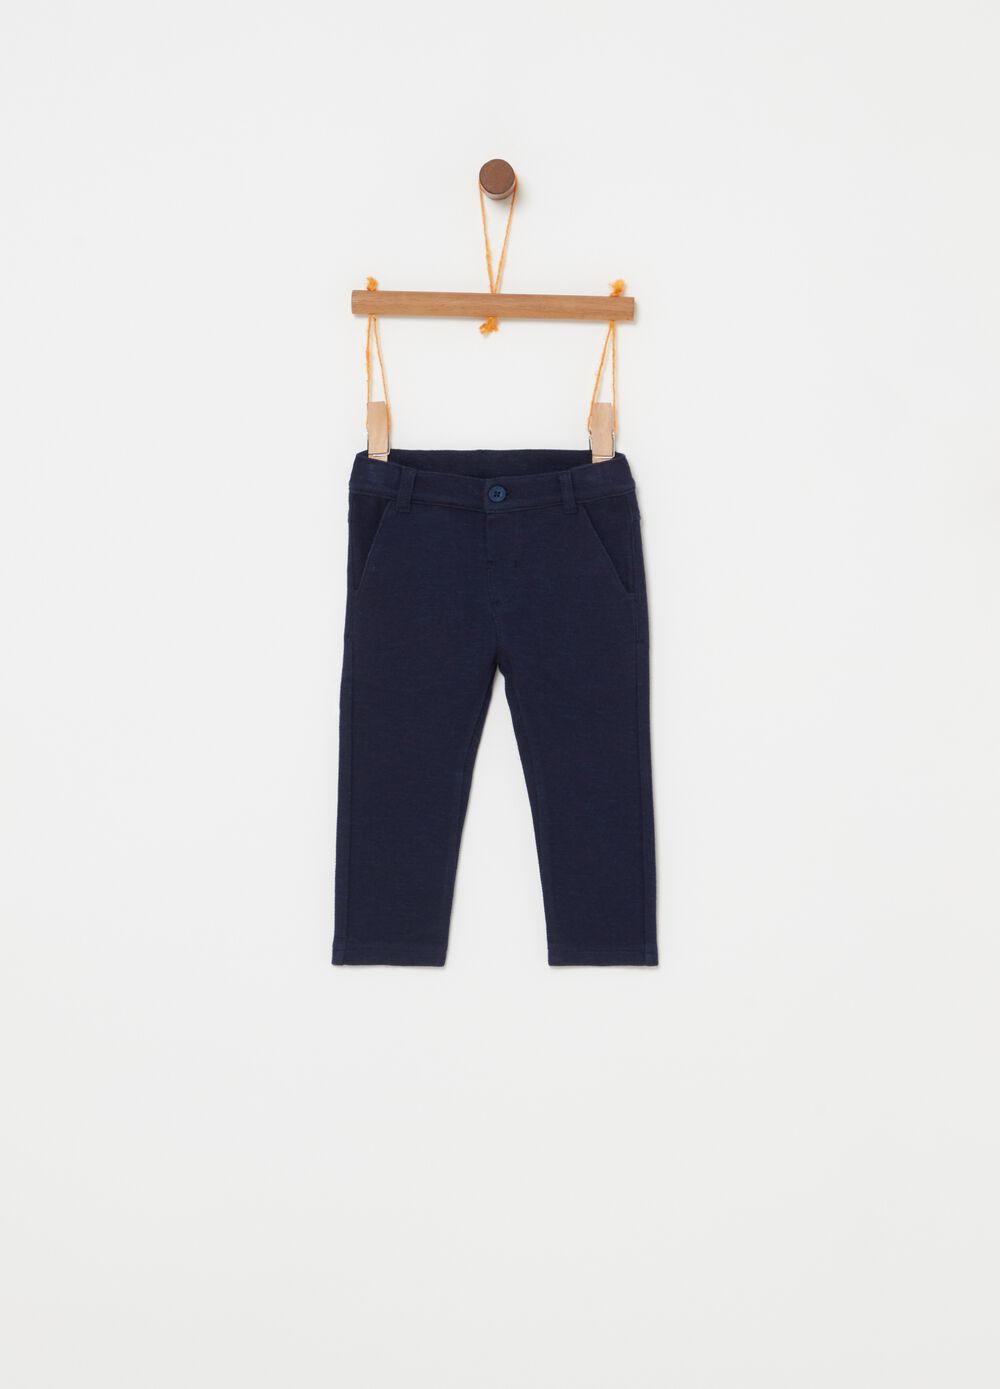 Trousers with welt pockets and button